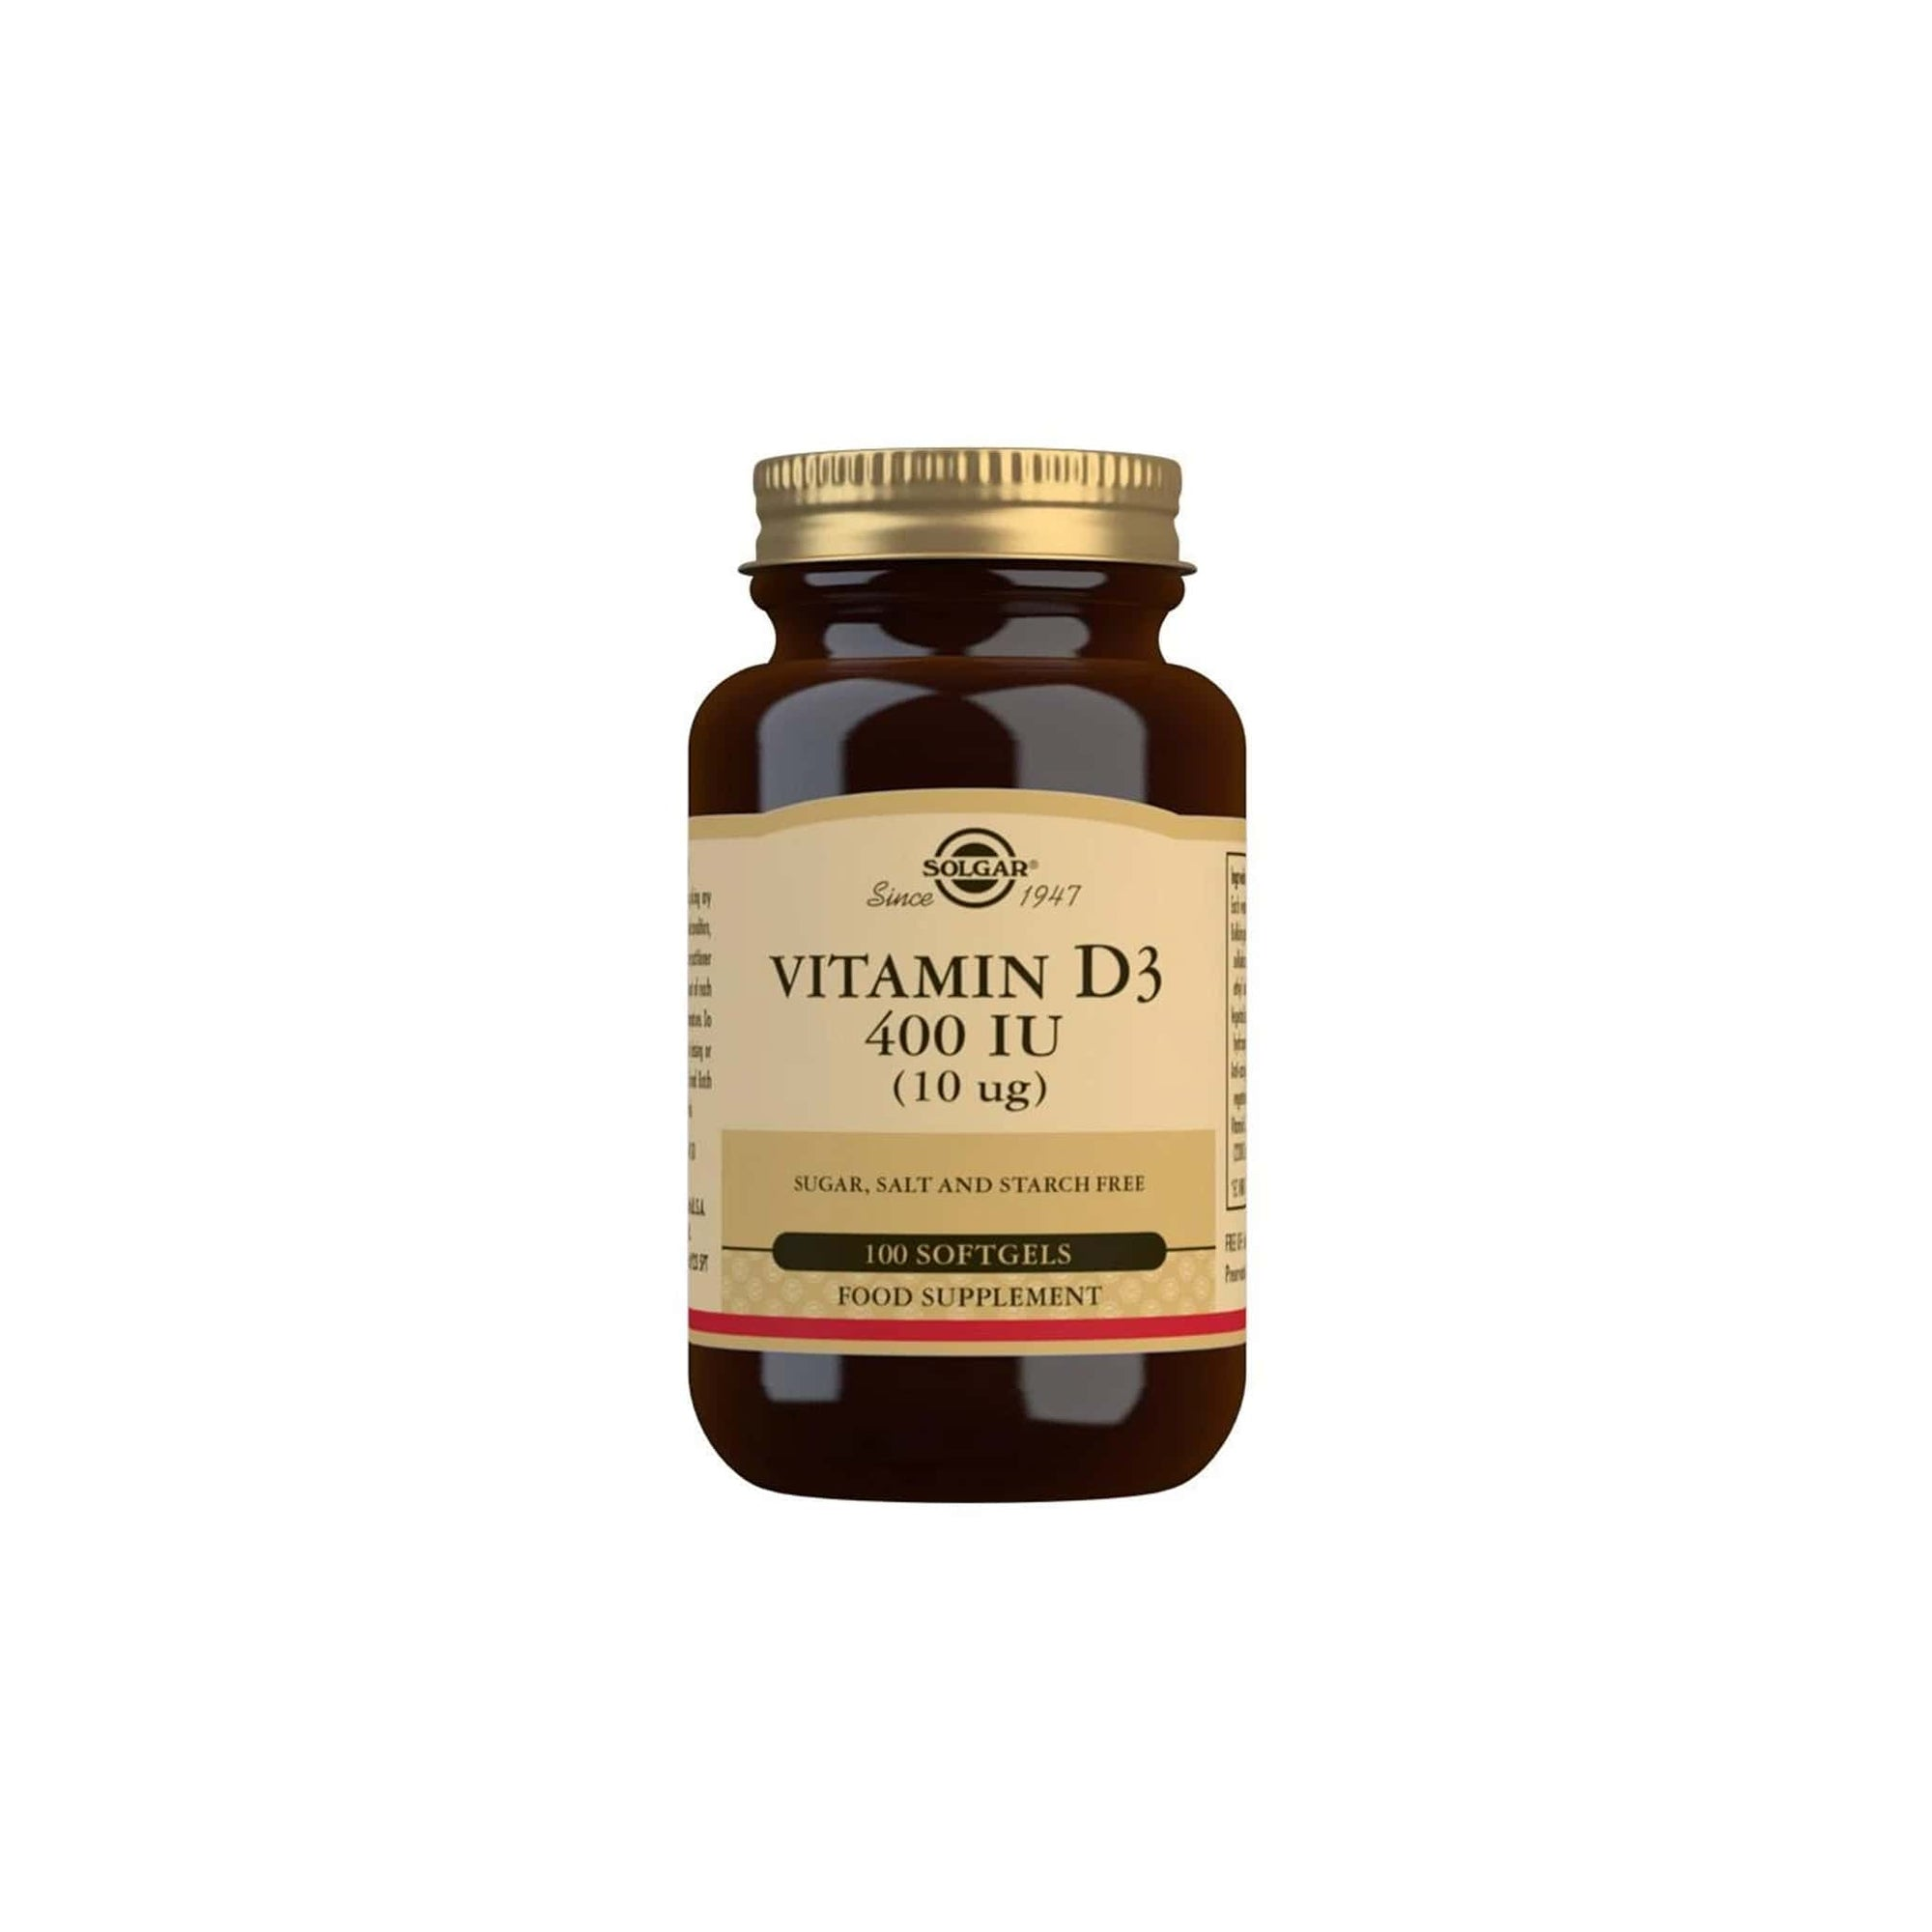 Solgar Vitamin D3 10 MCG Softgels 100's